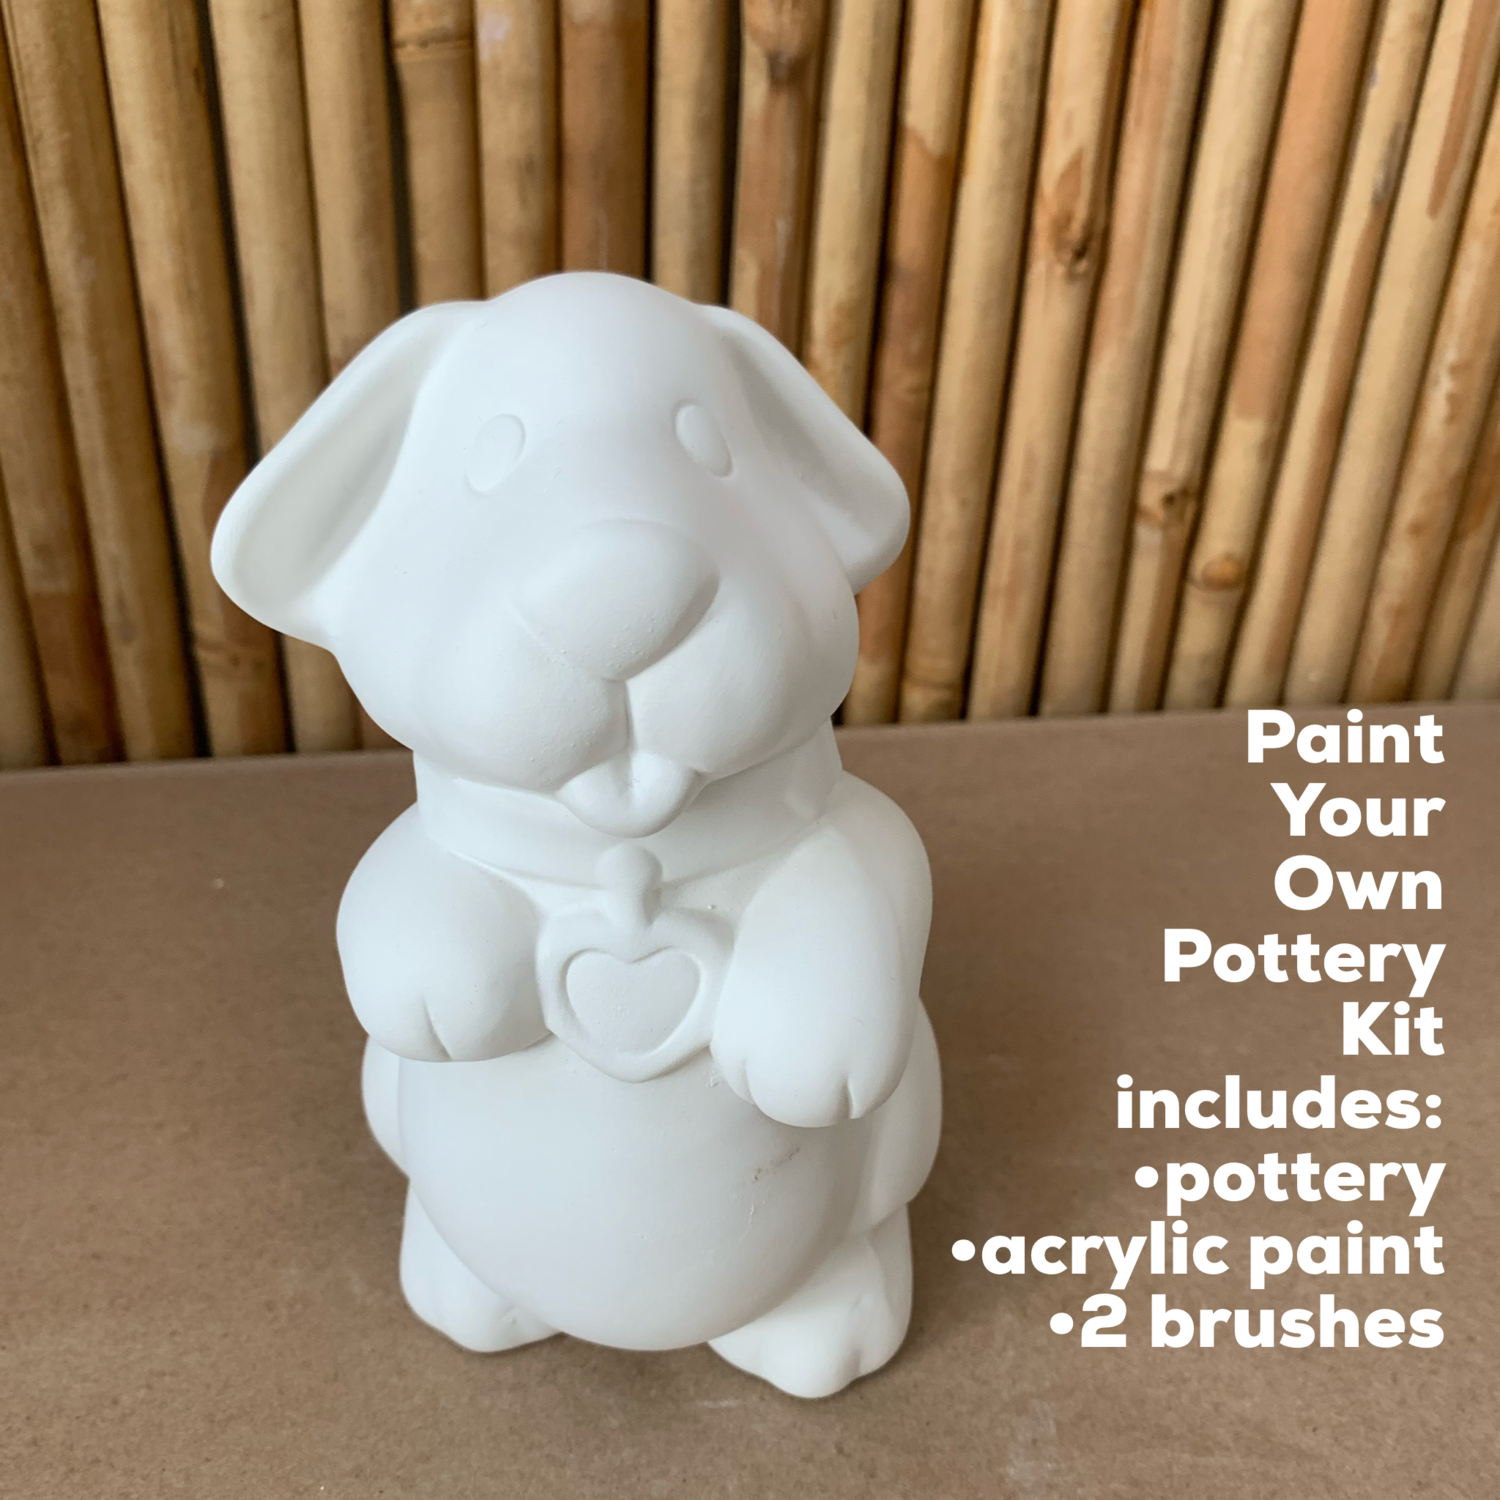 NO FIRE Paint Your Own Pottery Kit -  Ceramic Puppy Dog Bank Acrylic Painting Kit